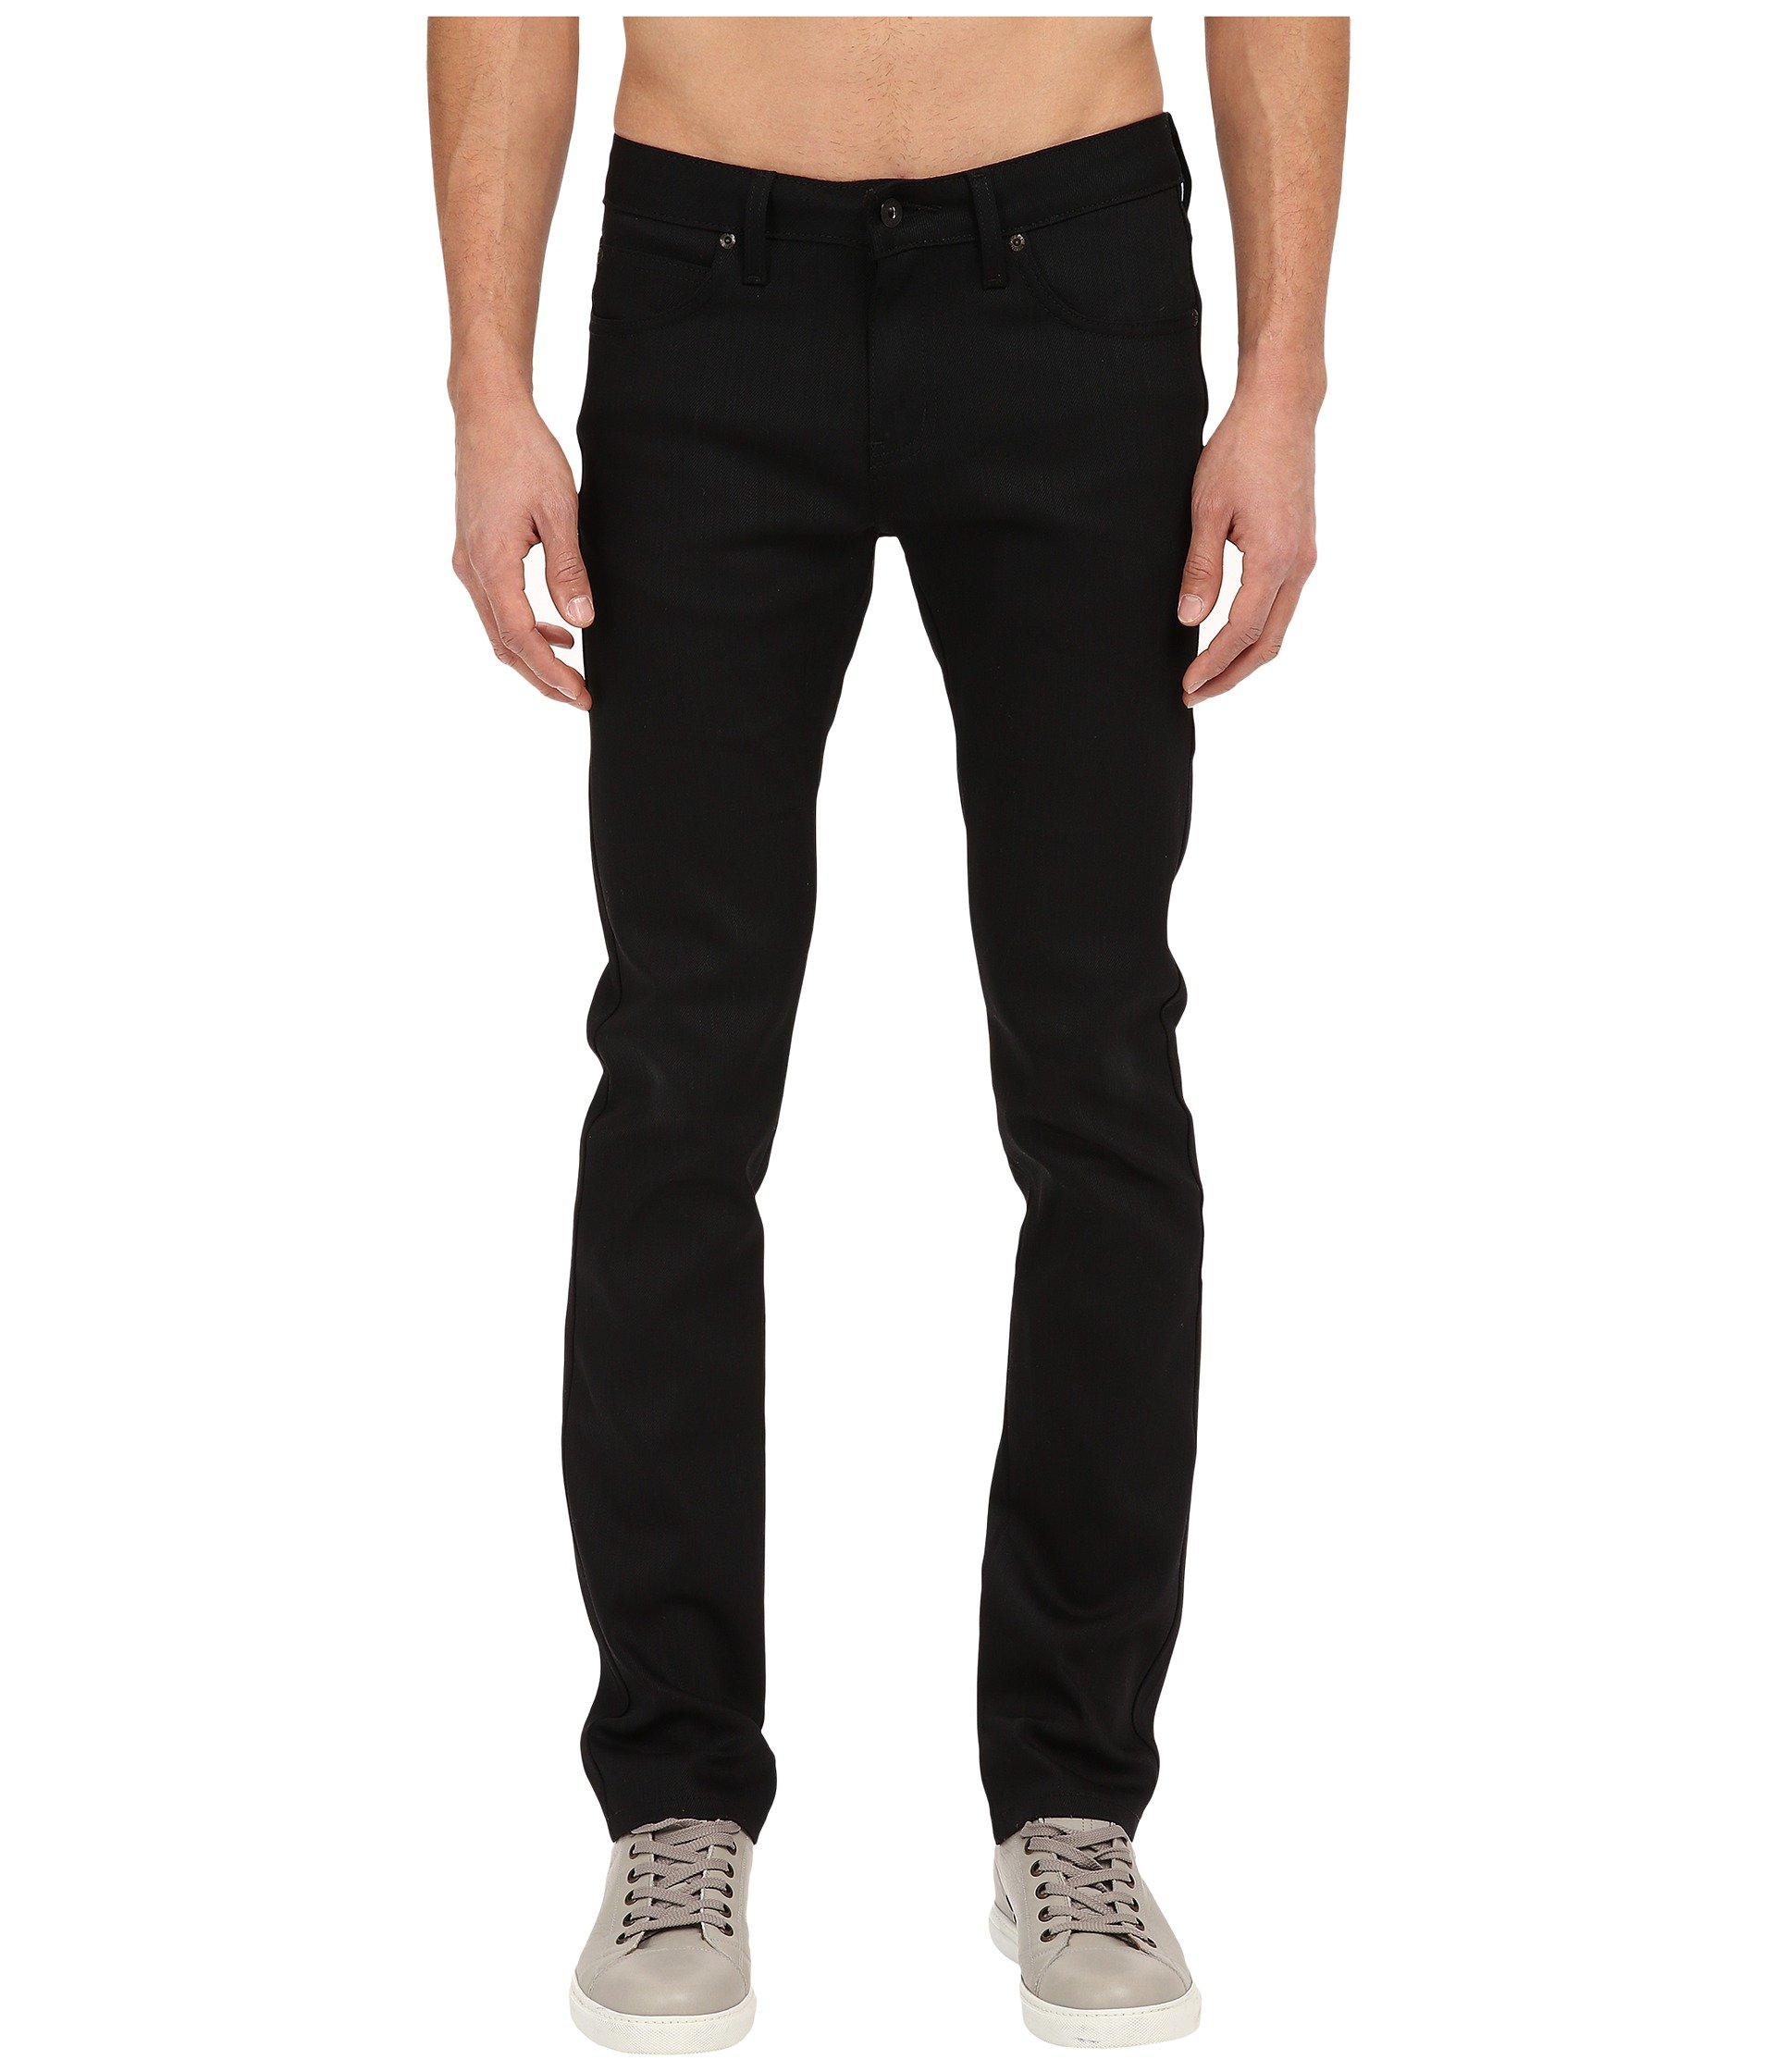 Naked Jeans stretch Power Denim Black Guy Super amp; Famous BzPq6Br